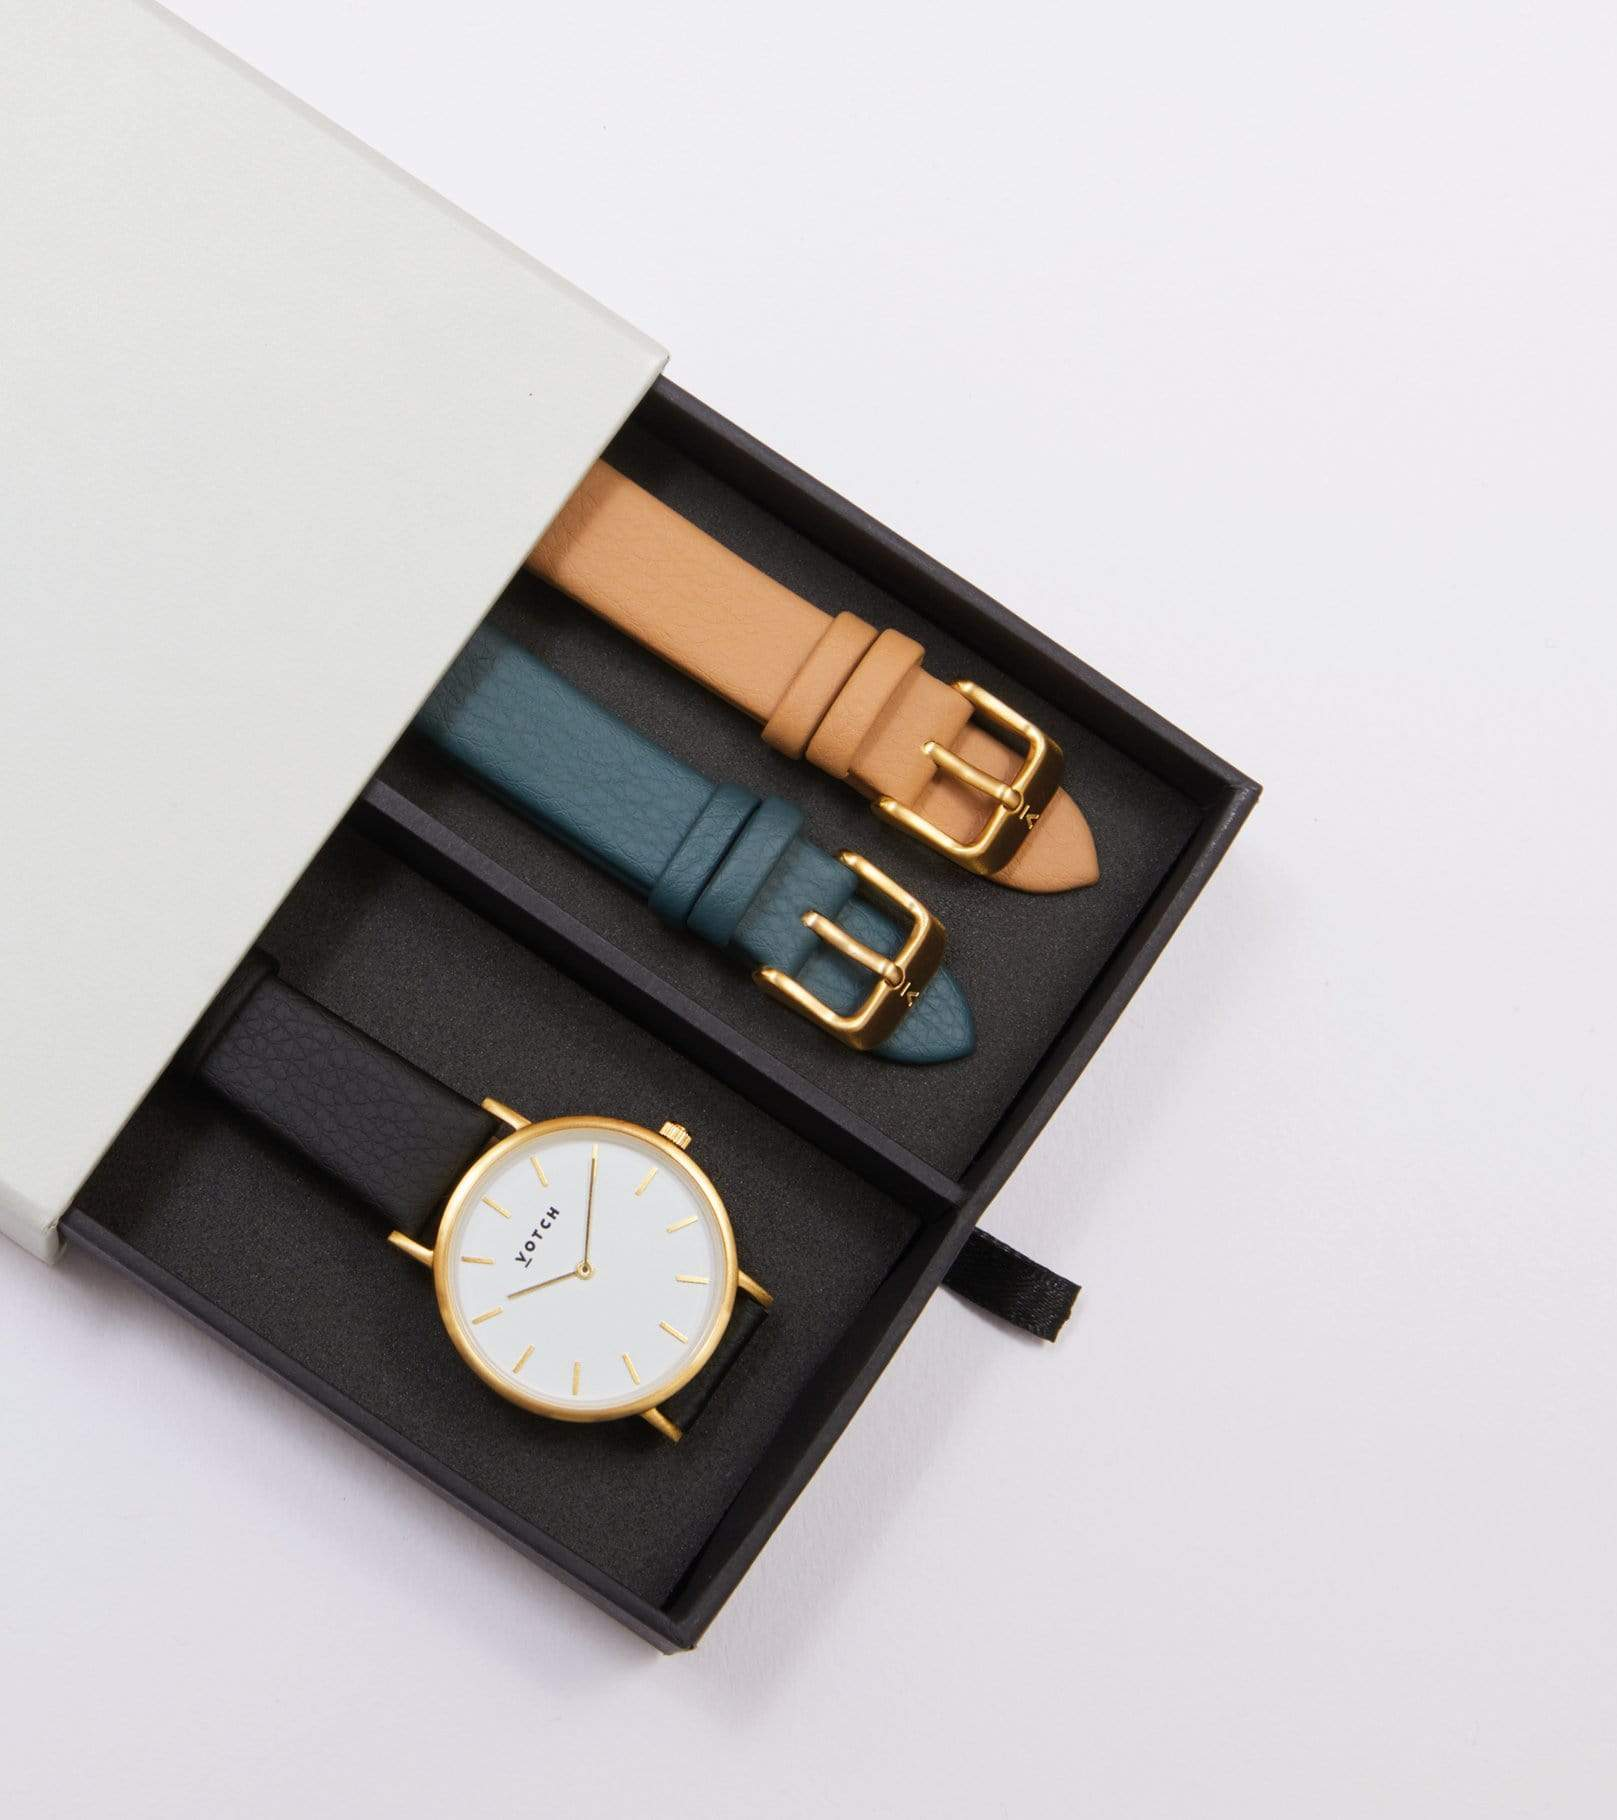 Gold & Black | Classic Petite Gift Set from Votch